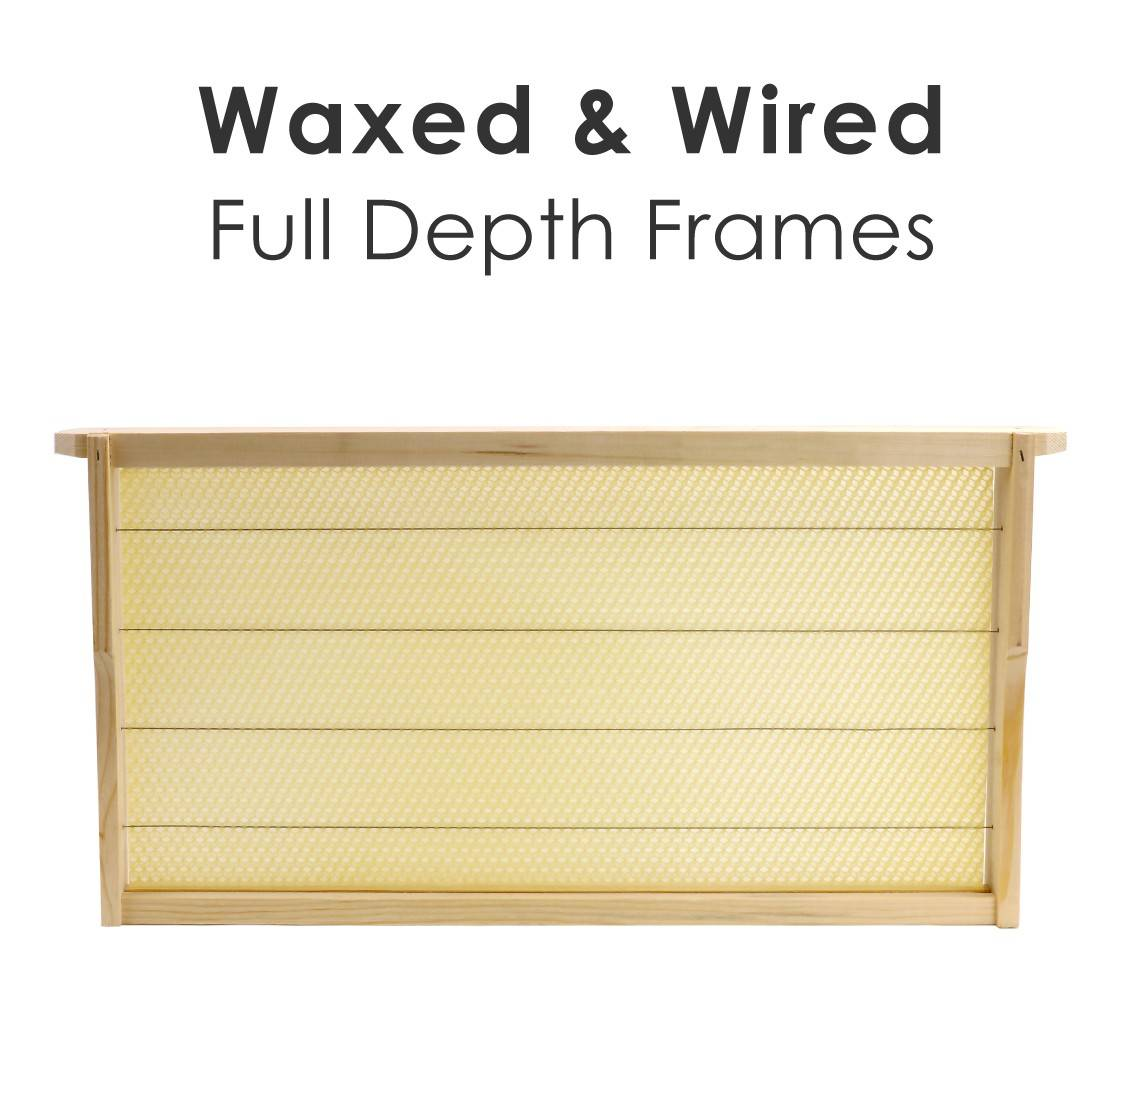 Full Depth Frames - Fully assembled, wired & Wax inserted - High Quality Russian Pine Frames